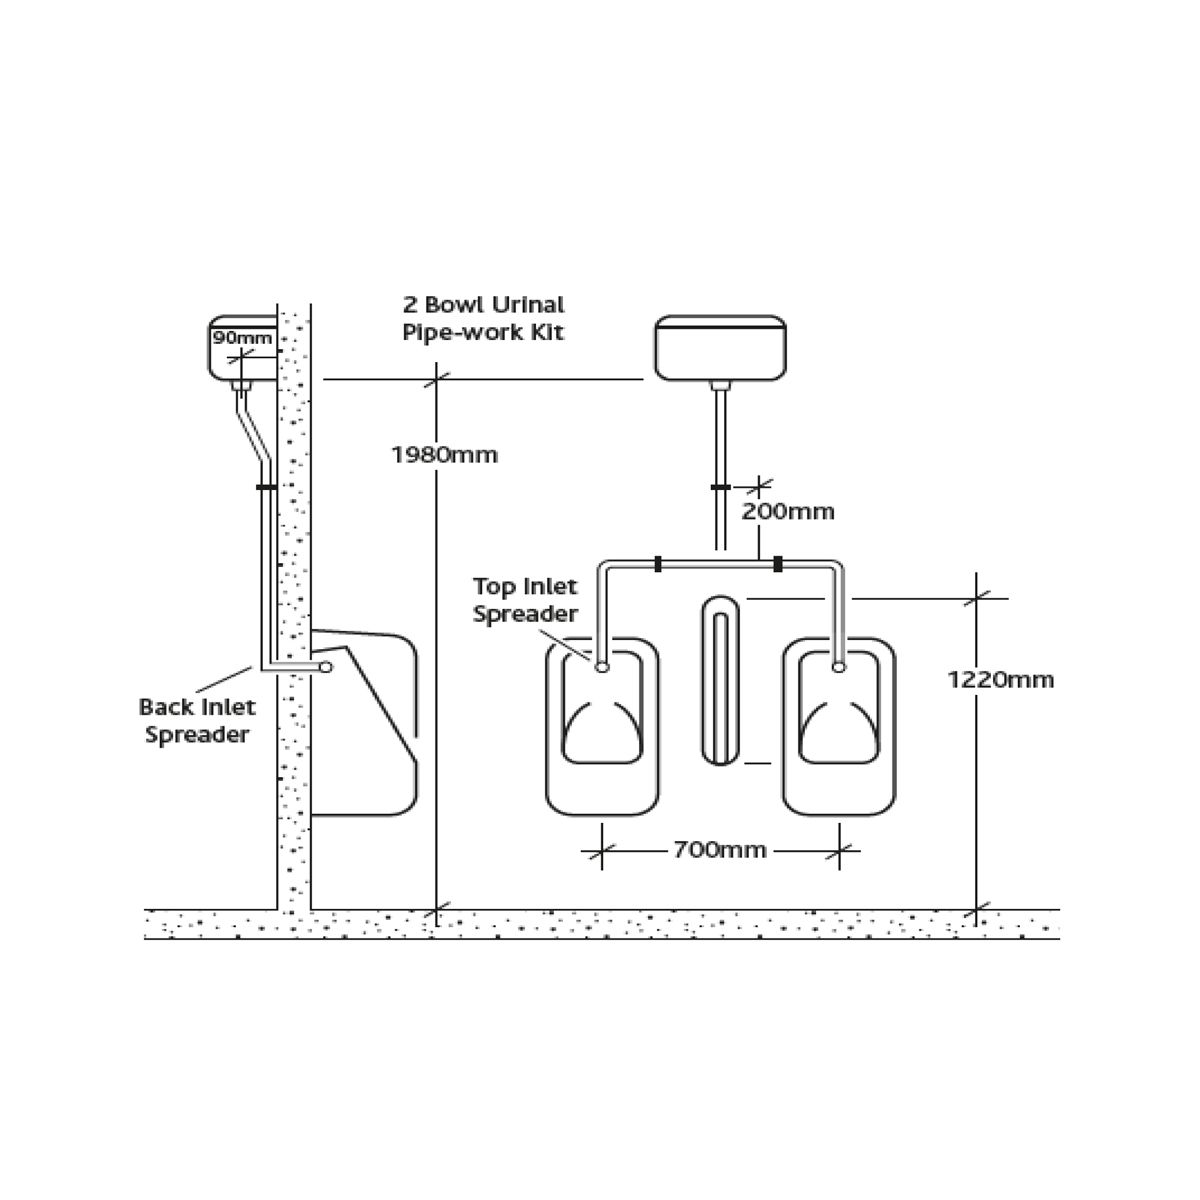 RAK Exposed Automatic Urinal Cistern 9.0L Measurements